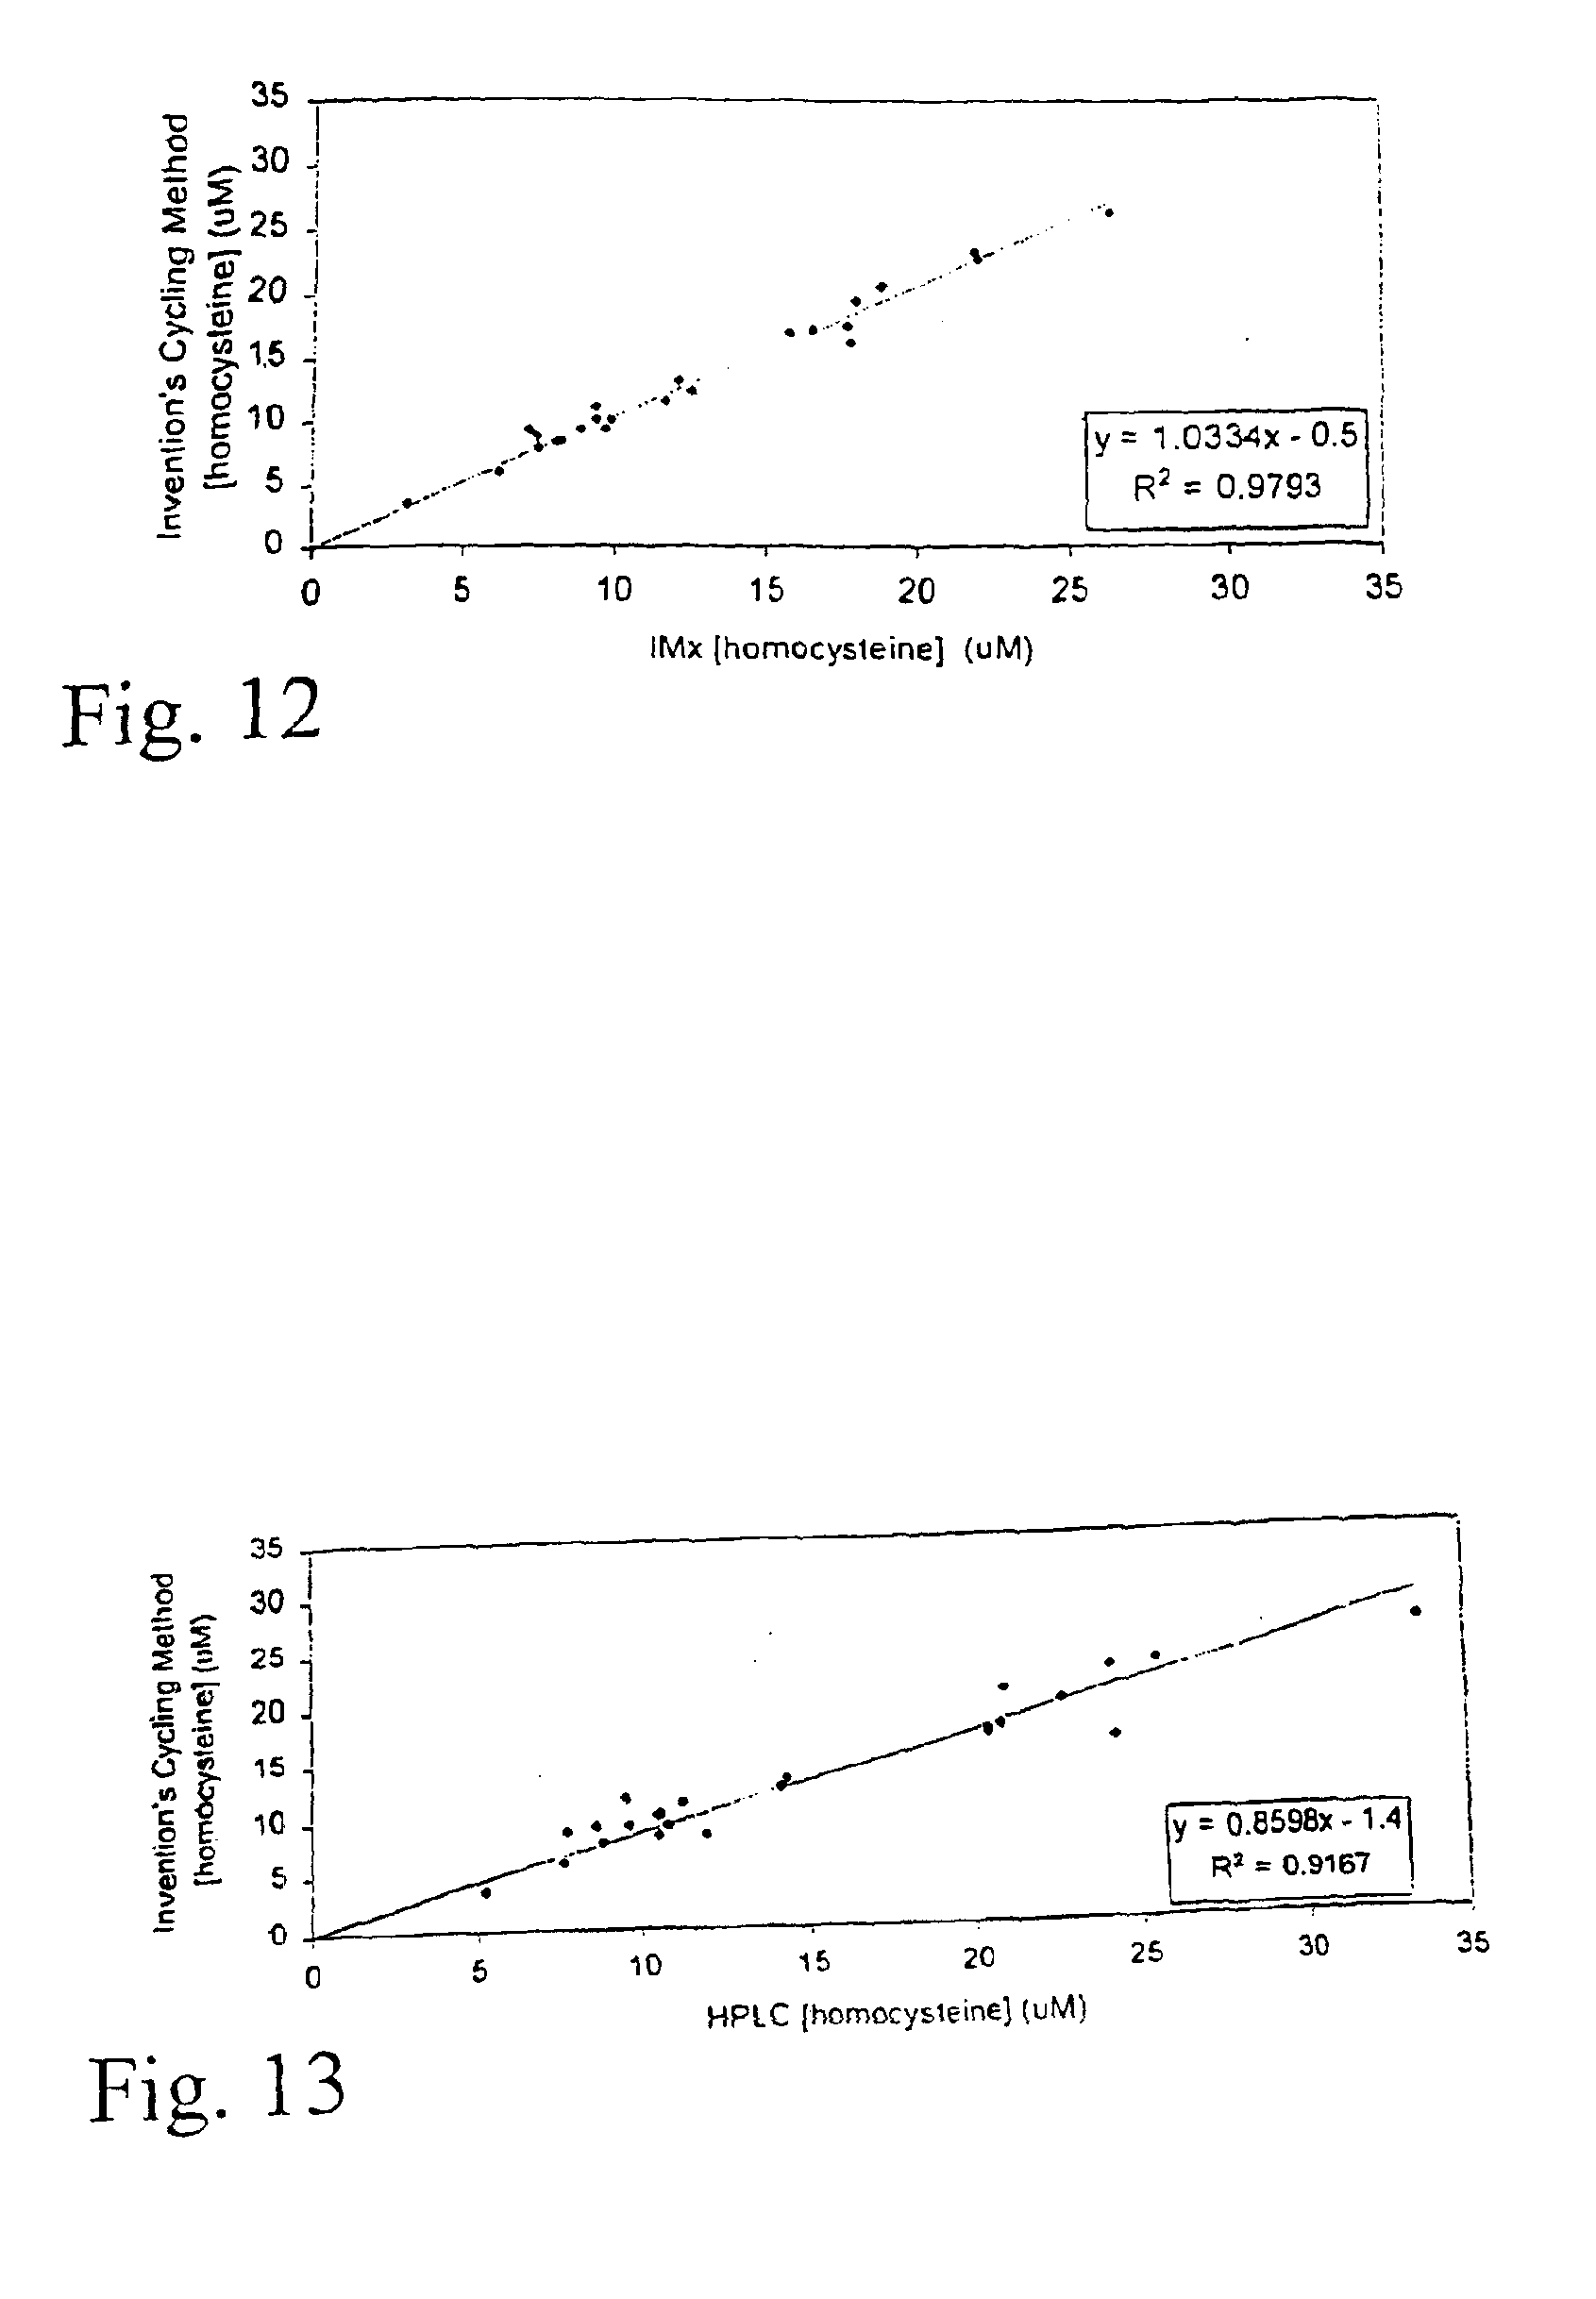 US6867014B2 - Enzymatic cycling assays for homocysteine and